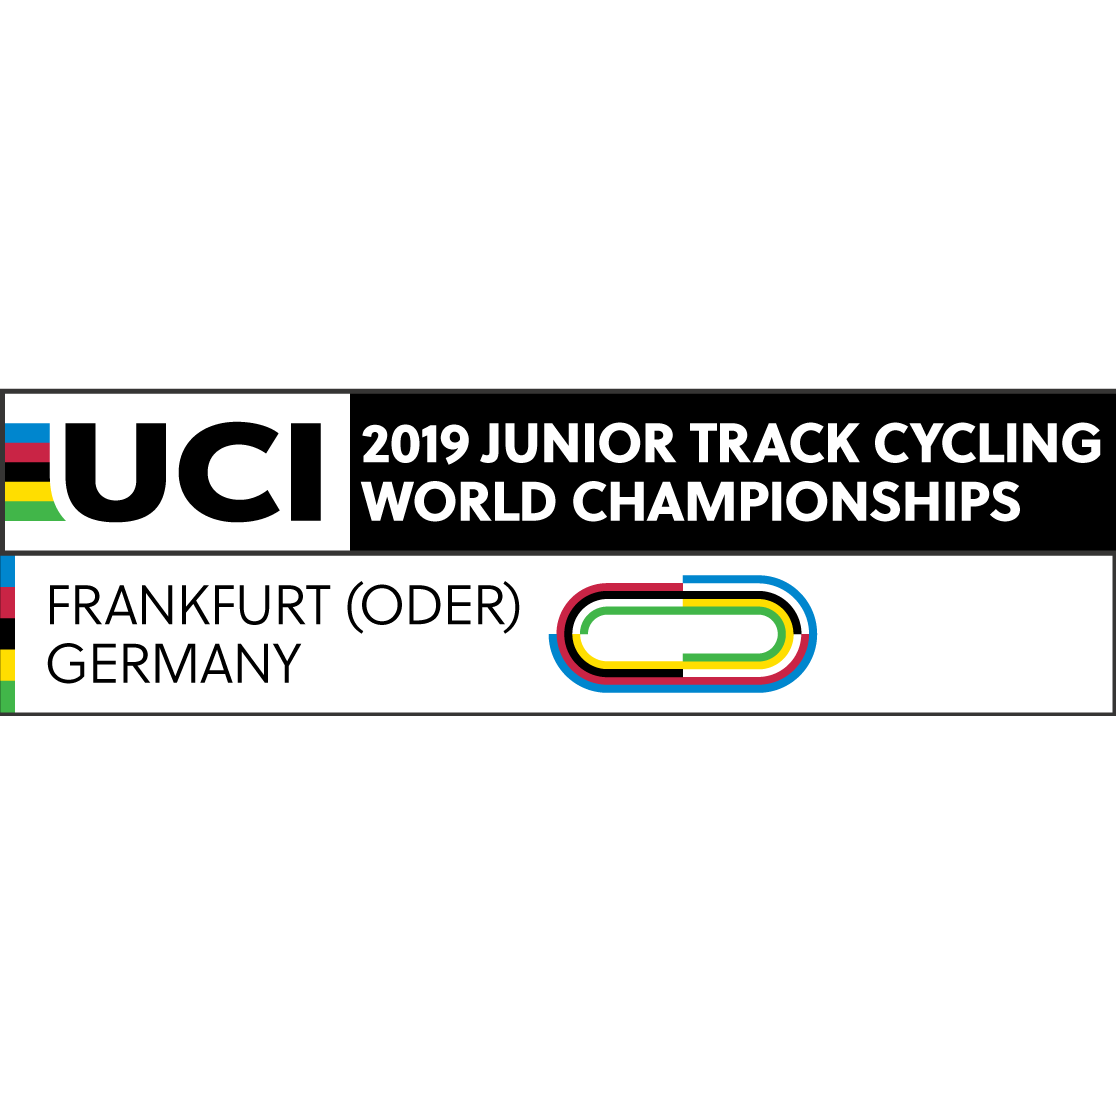 2019 UCI Track Cycling Junior World Championships